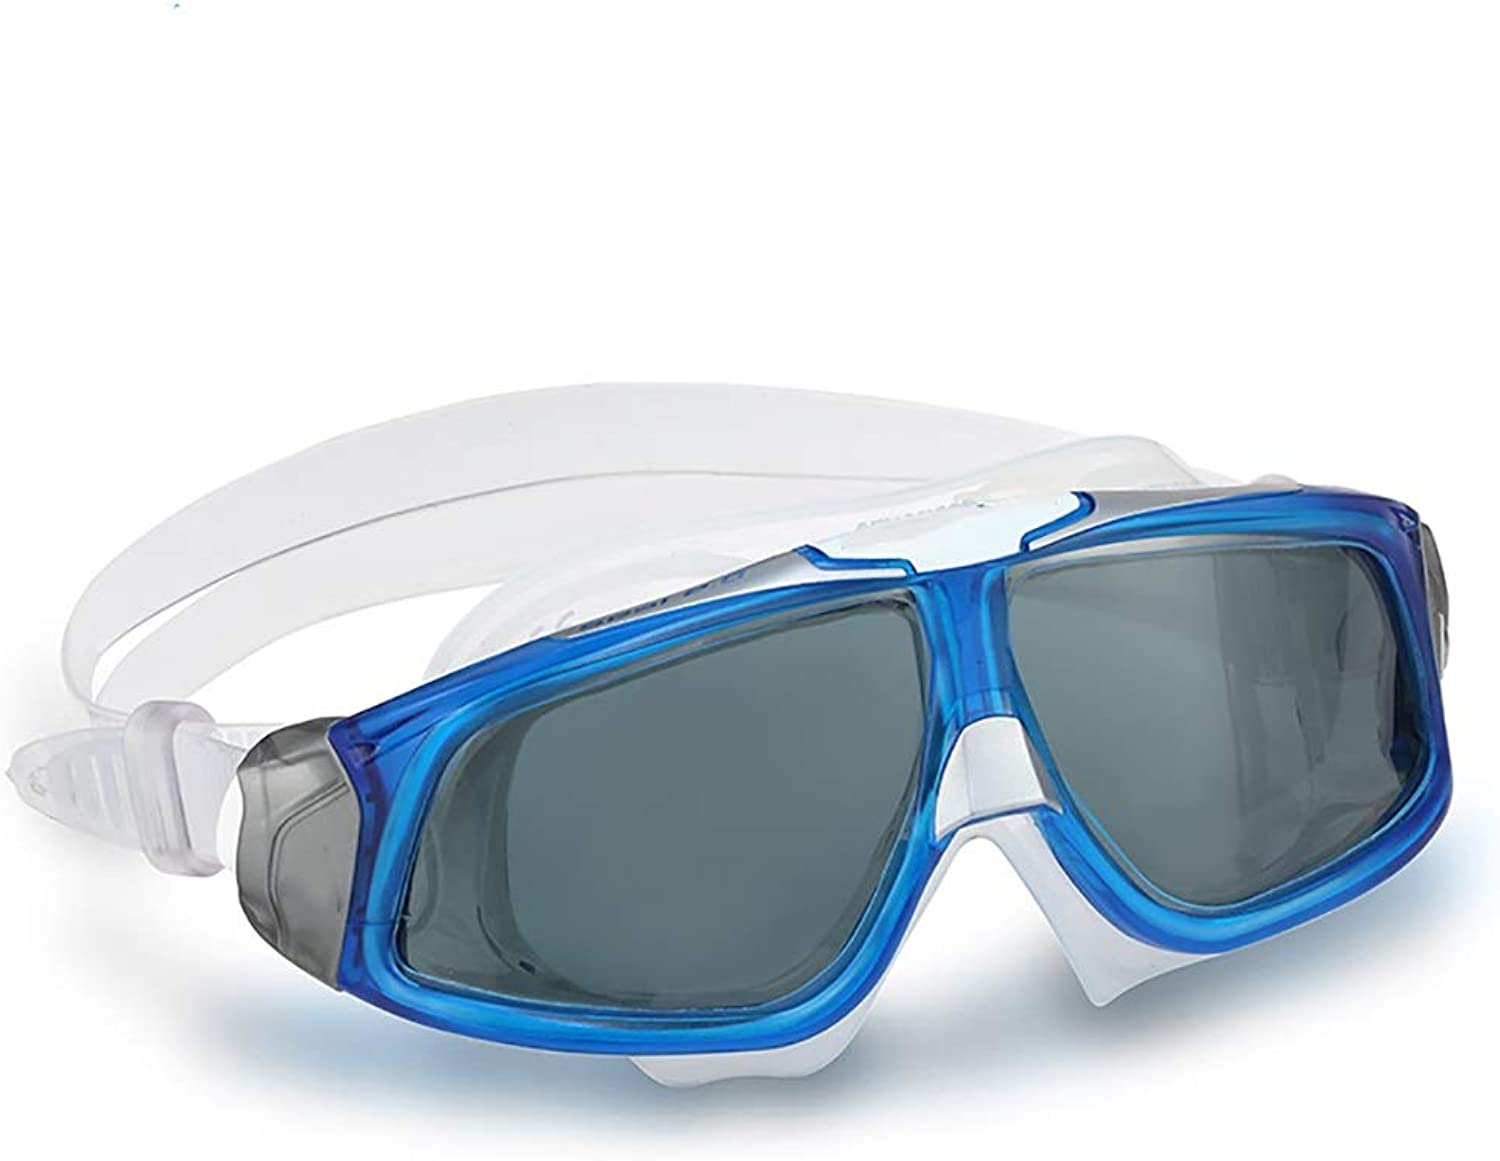 GUOQING Swimming GogglesWide View Swimming Goggle Anti Fog UV Predection Leaking Glasses for Adult Men Women Youth Kids